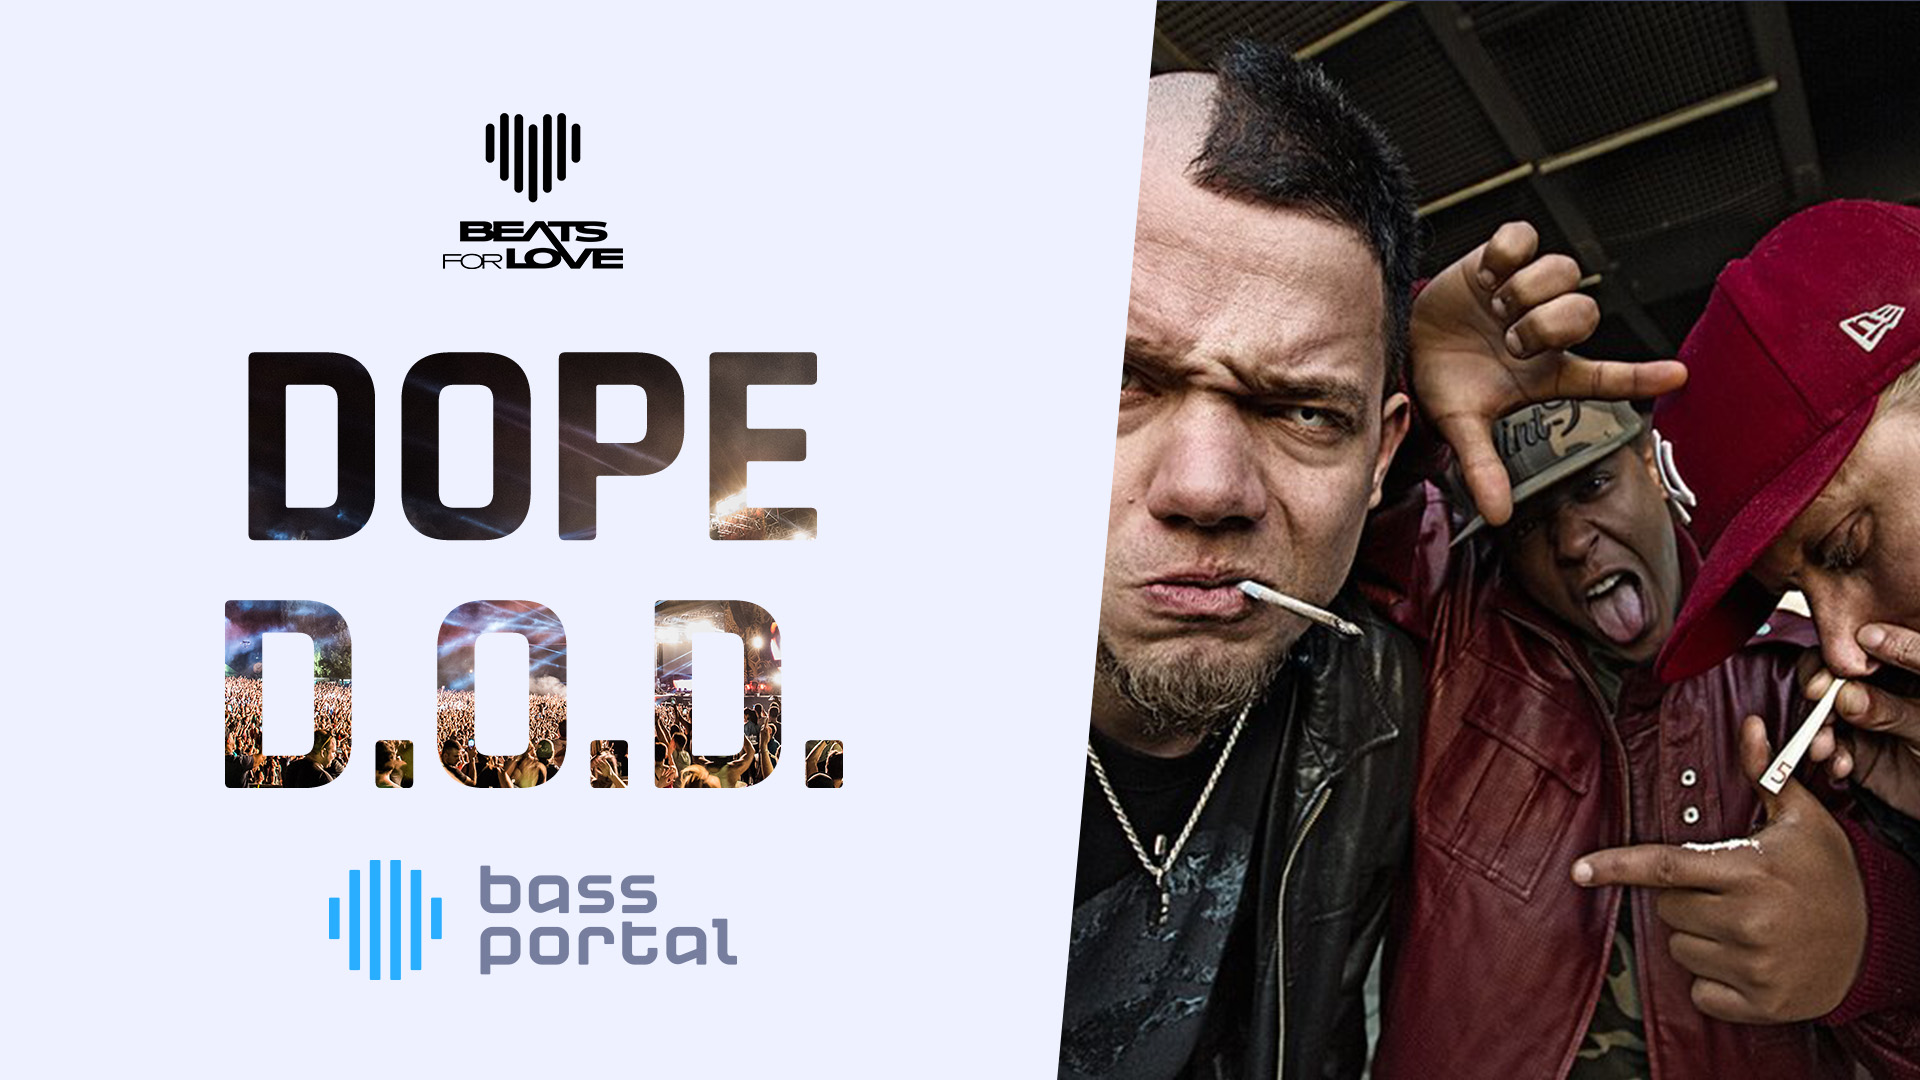 Dope D.O.D. - Beats for Love 2017